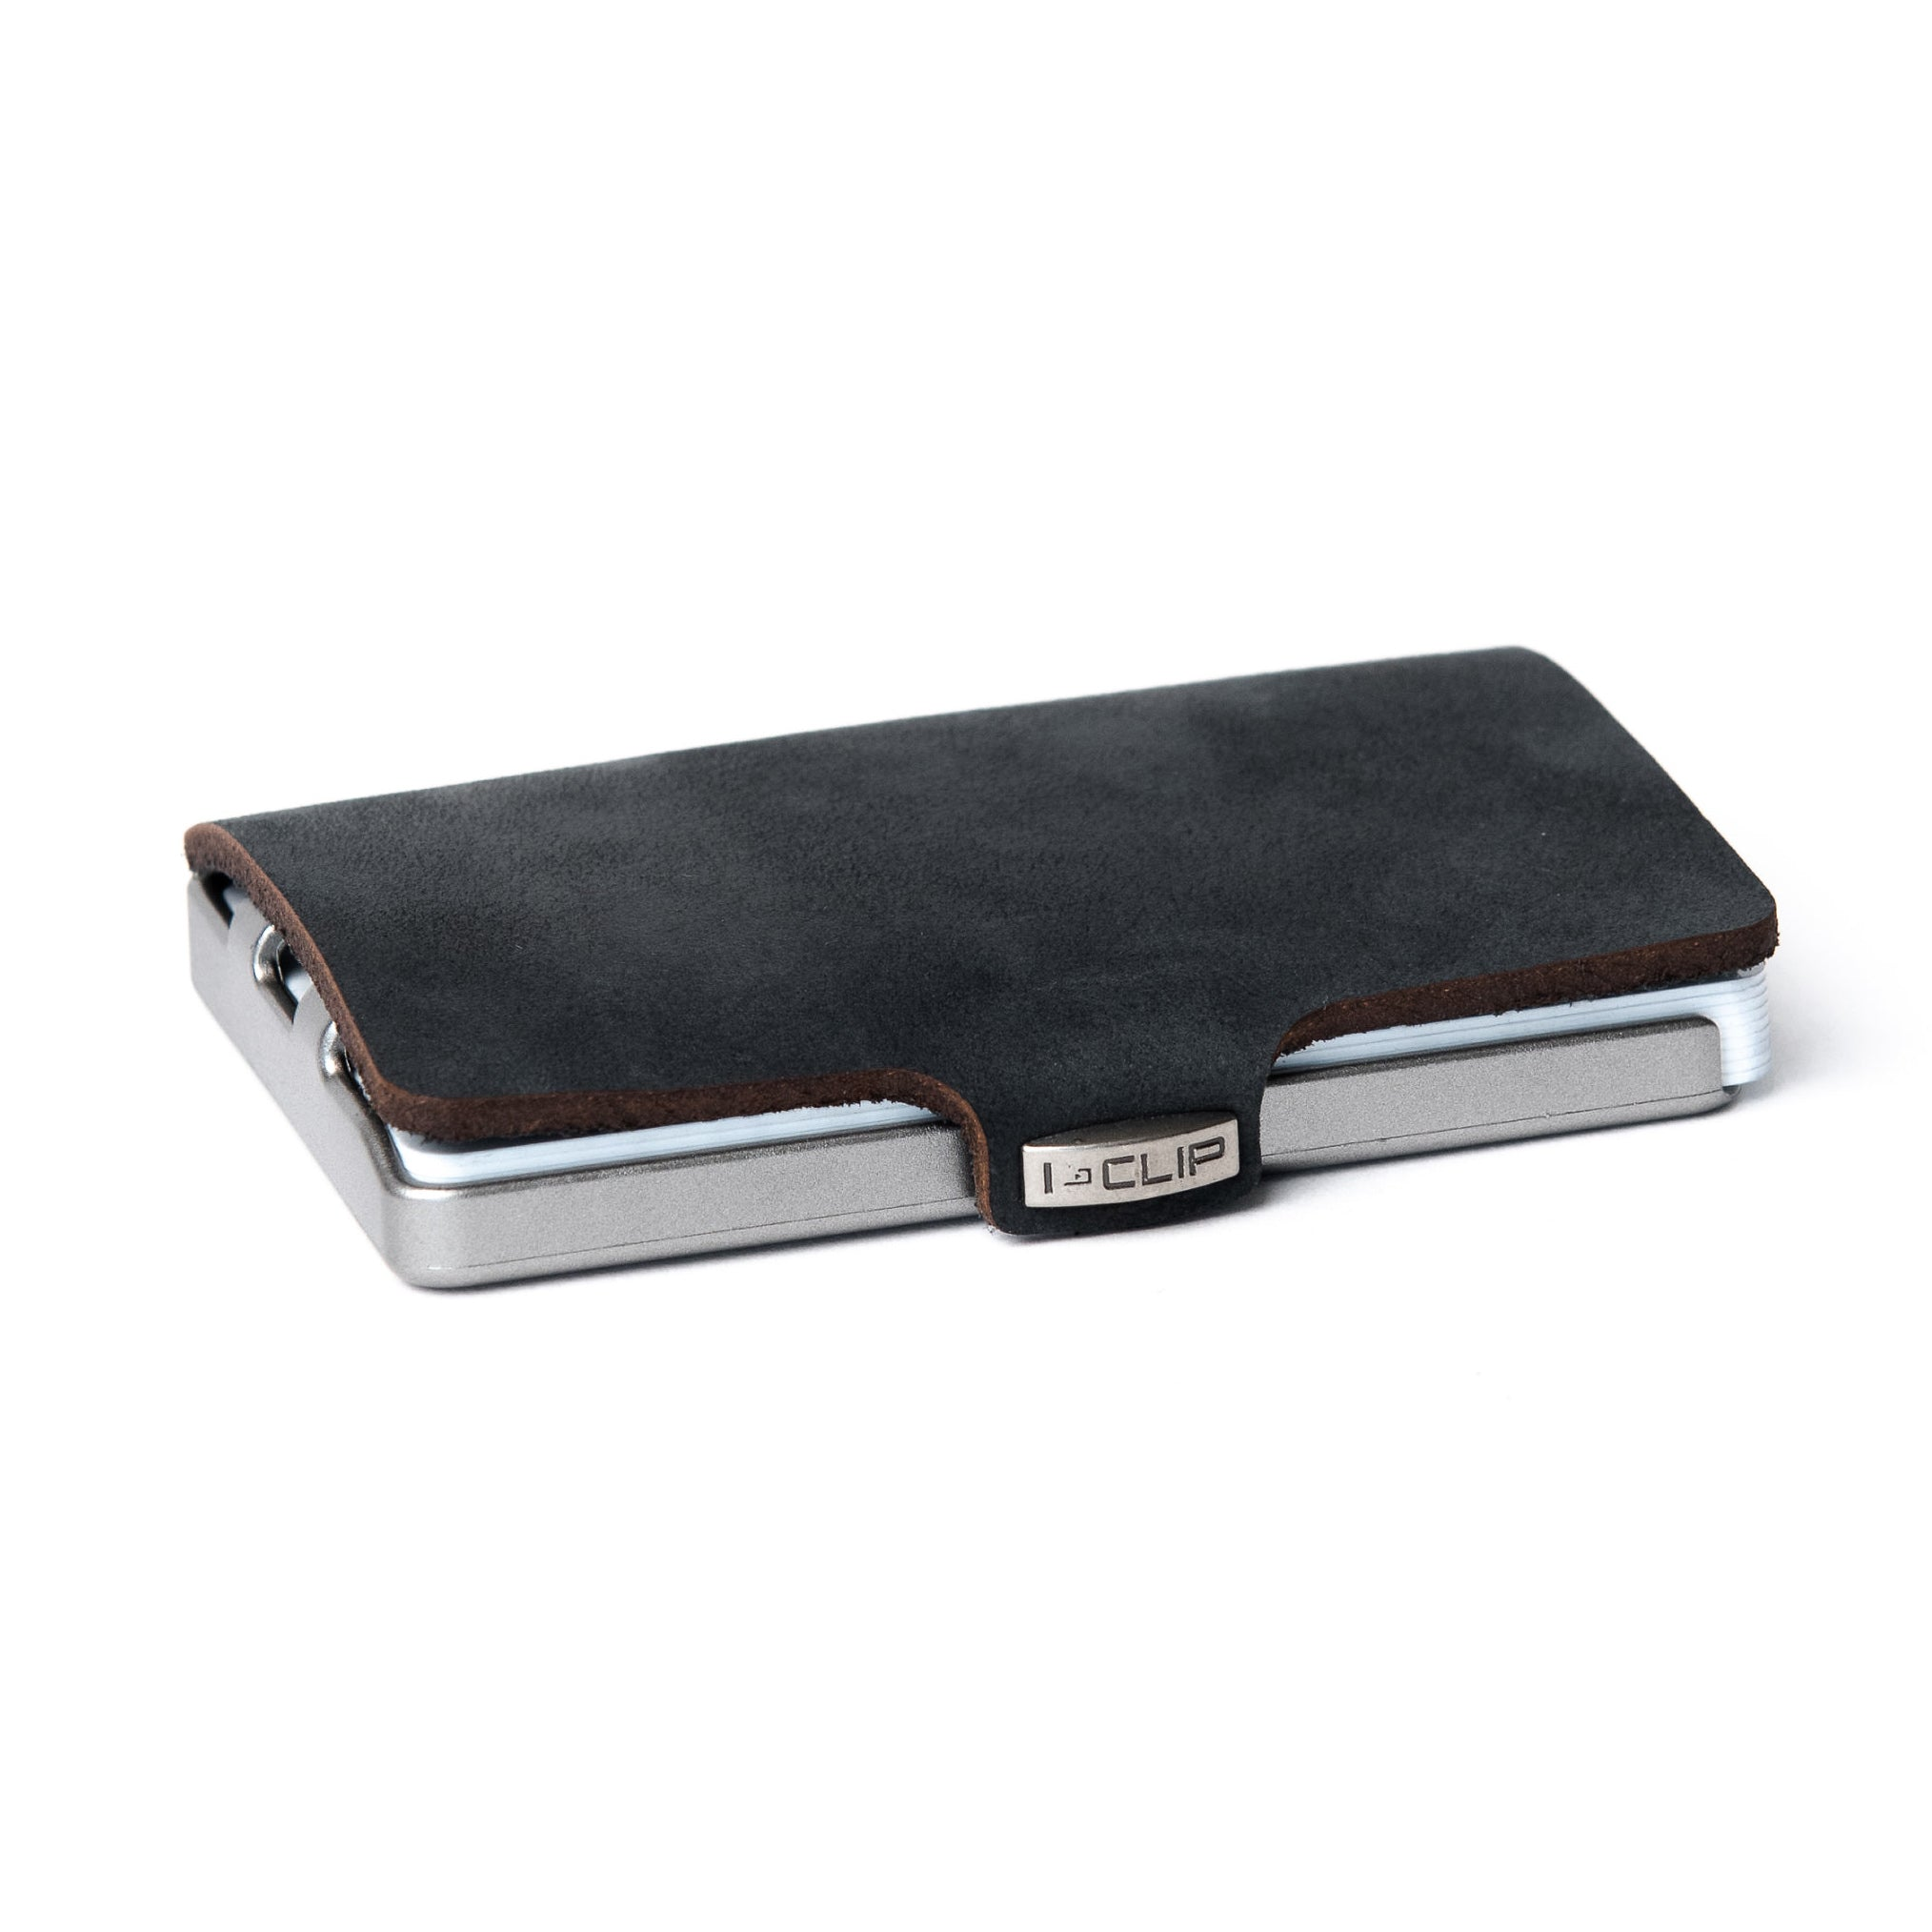 Soft Touch Leather - Black / Metallic Gray Frame - I-CLIP